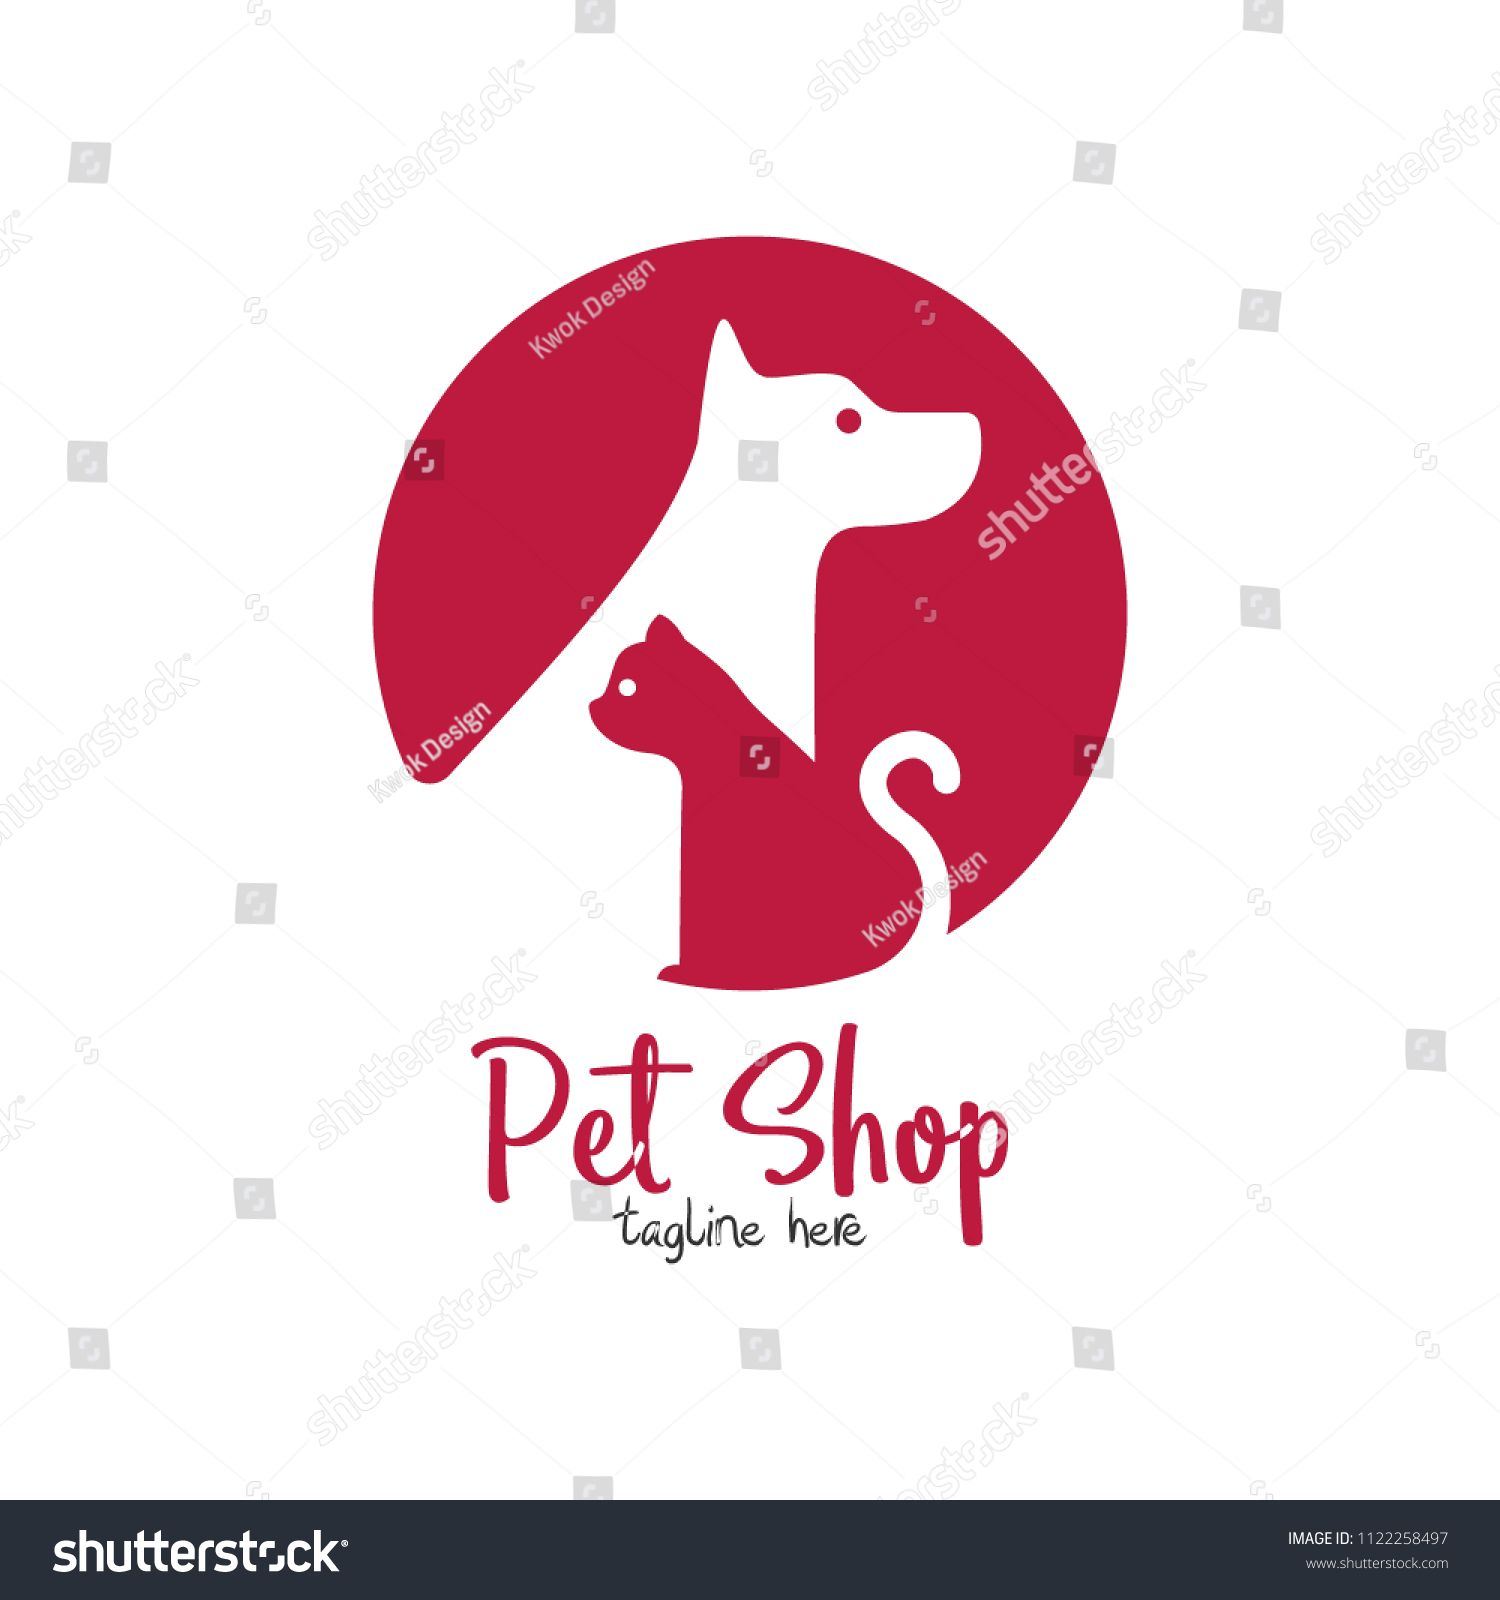 Pet Shop Pet House Pet Care Emblem Logo Design Template Veterinary Clinics And Animal Shelters Homeless Vector Animal Shelter Pet Care Logo Design Template